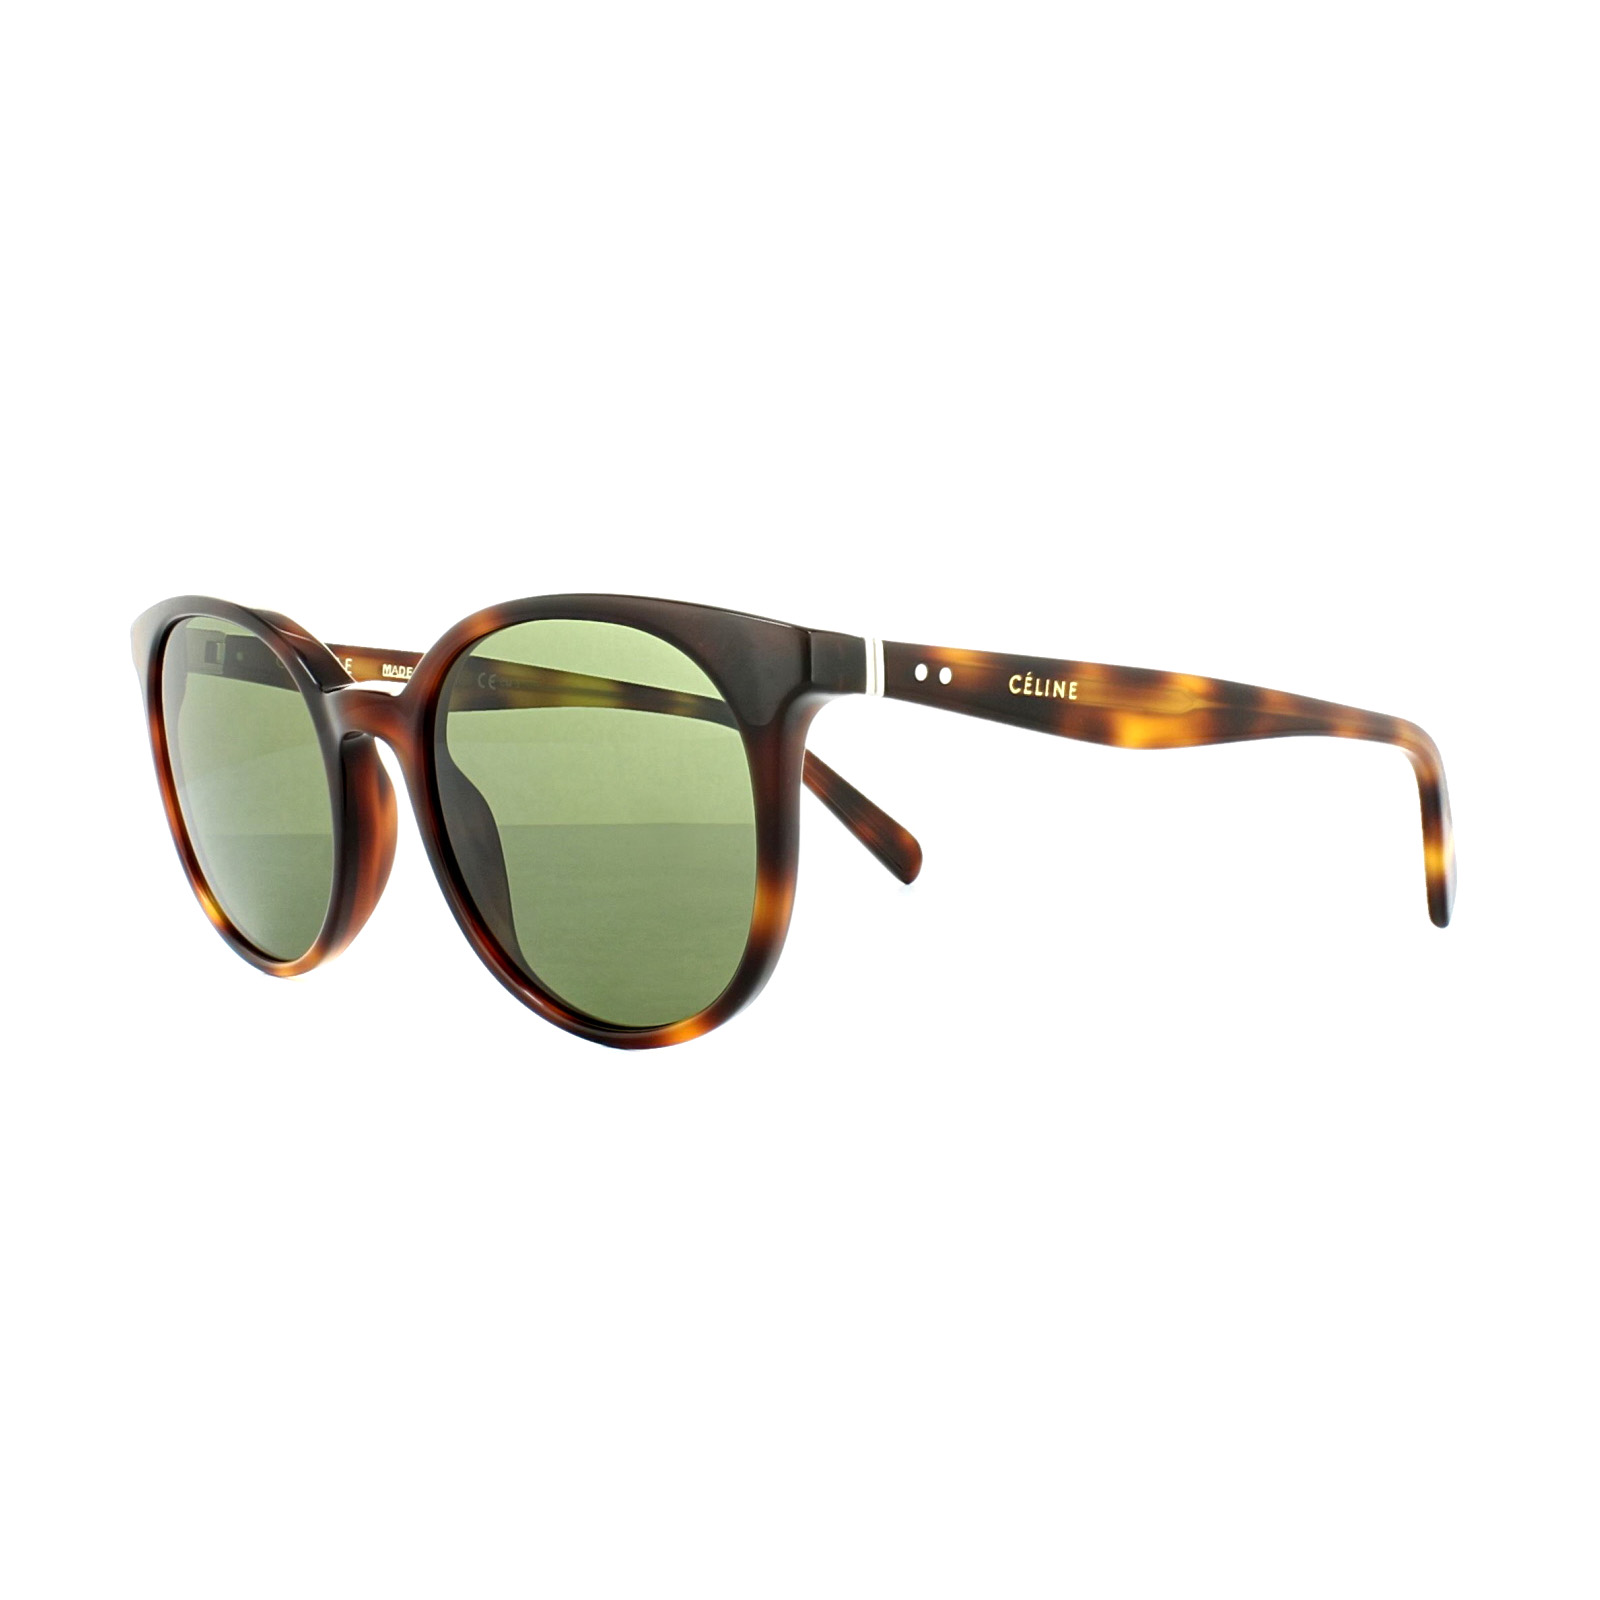 4a015895d4 Cheap Celine 41067 S Thin Mary Small Sunglasses - Discounted Sunglasses